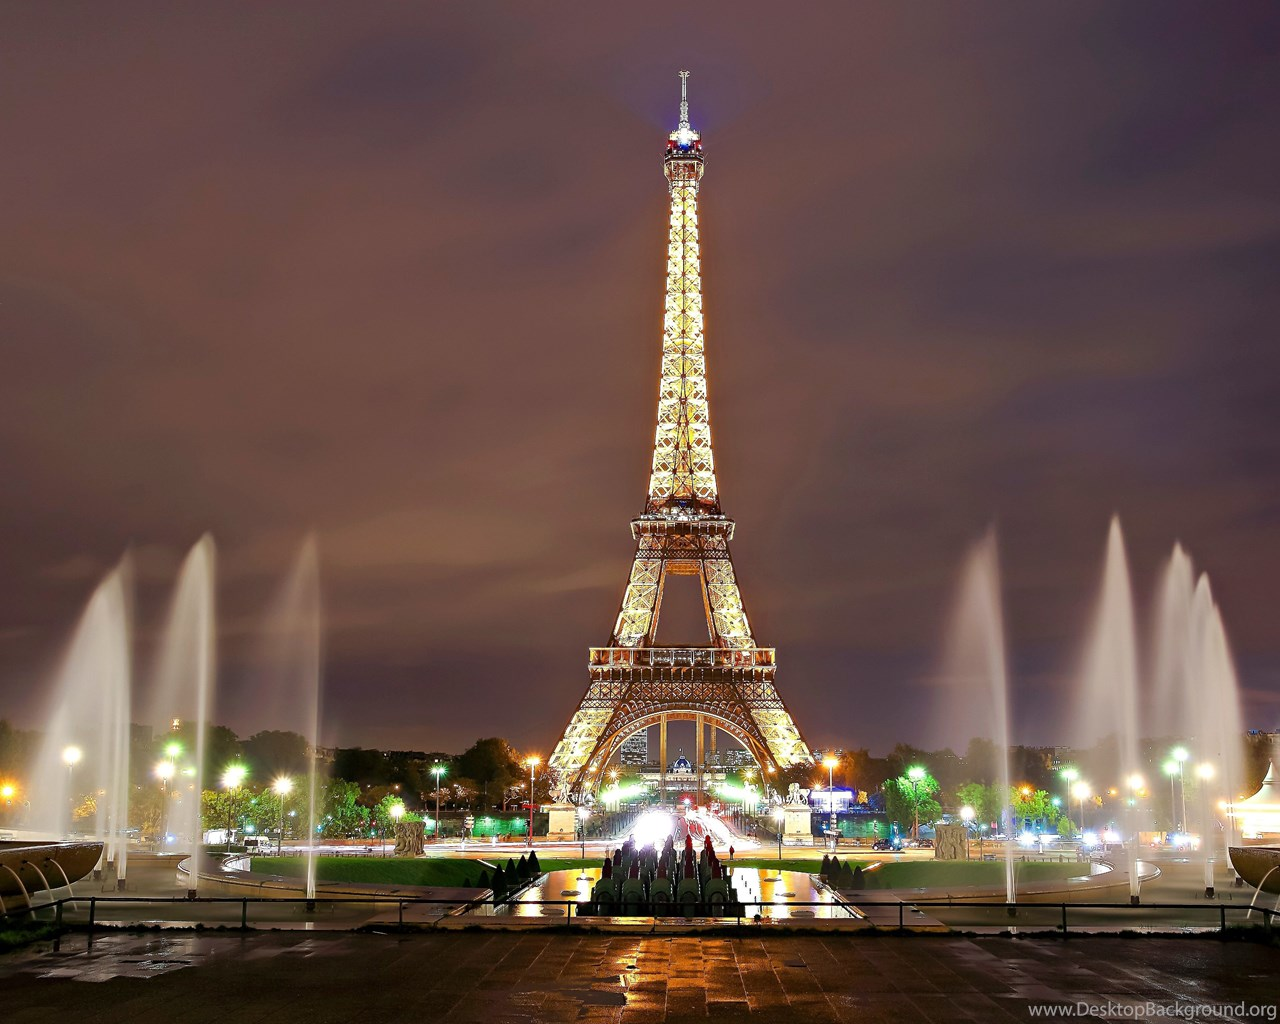 Architecture paris eiffel tower desktop wallpapers for hd - Paris eiffel tower desktop wallpaper ...